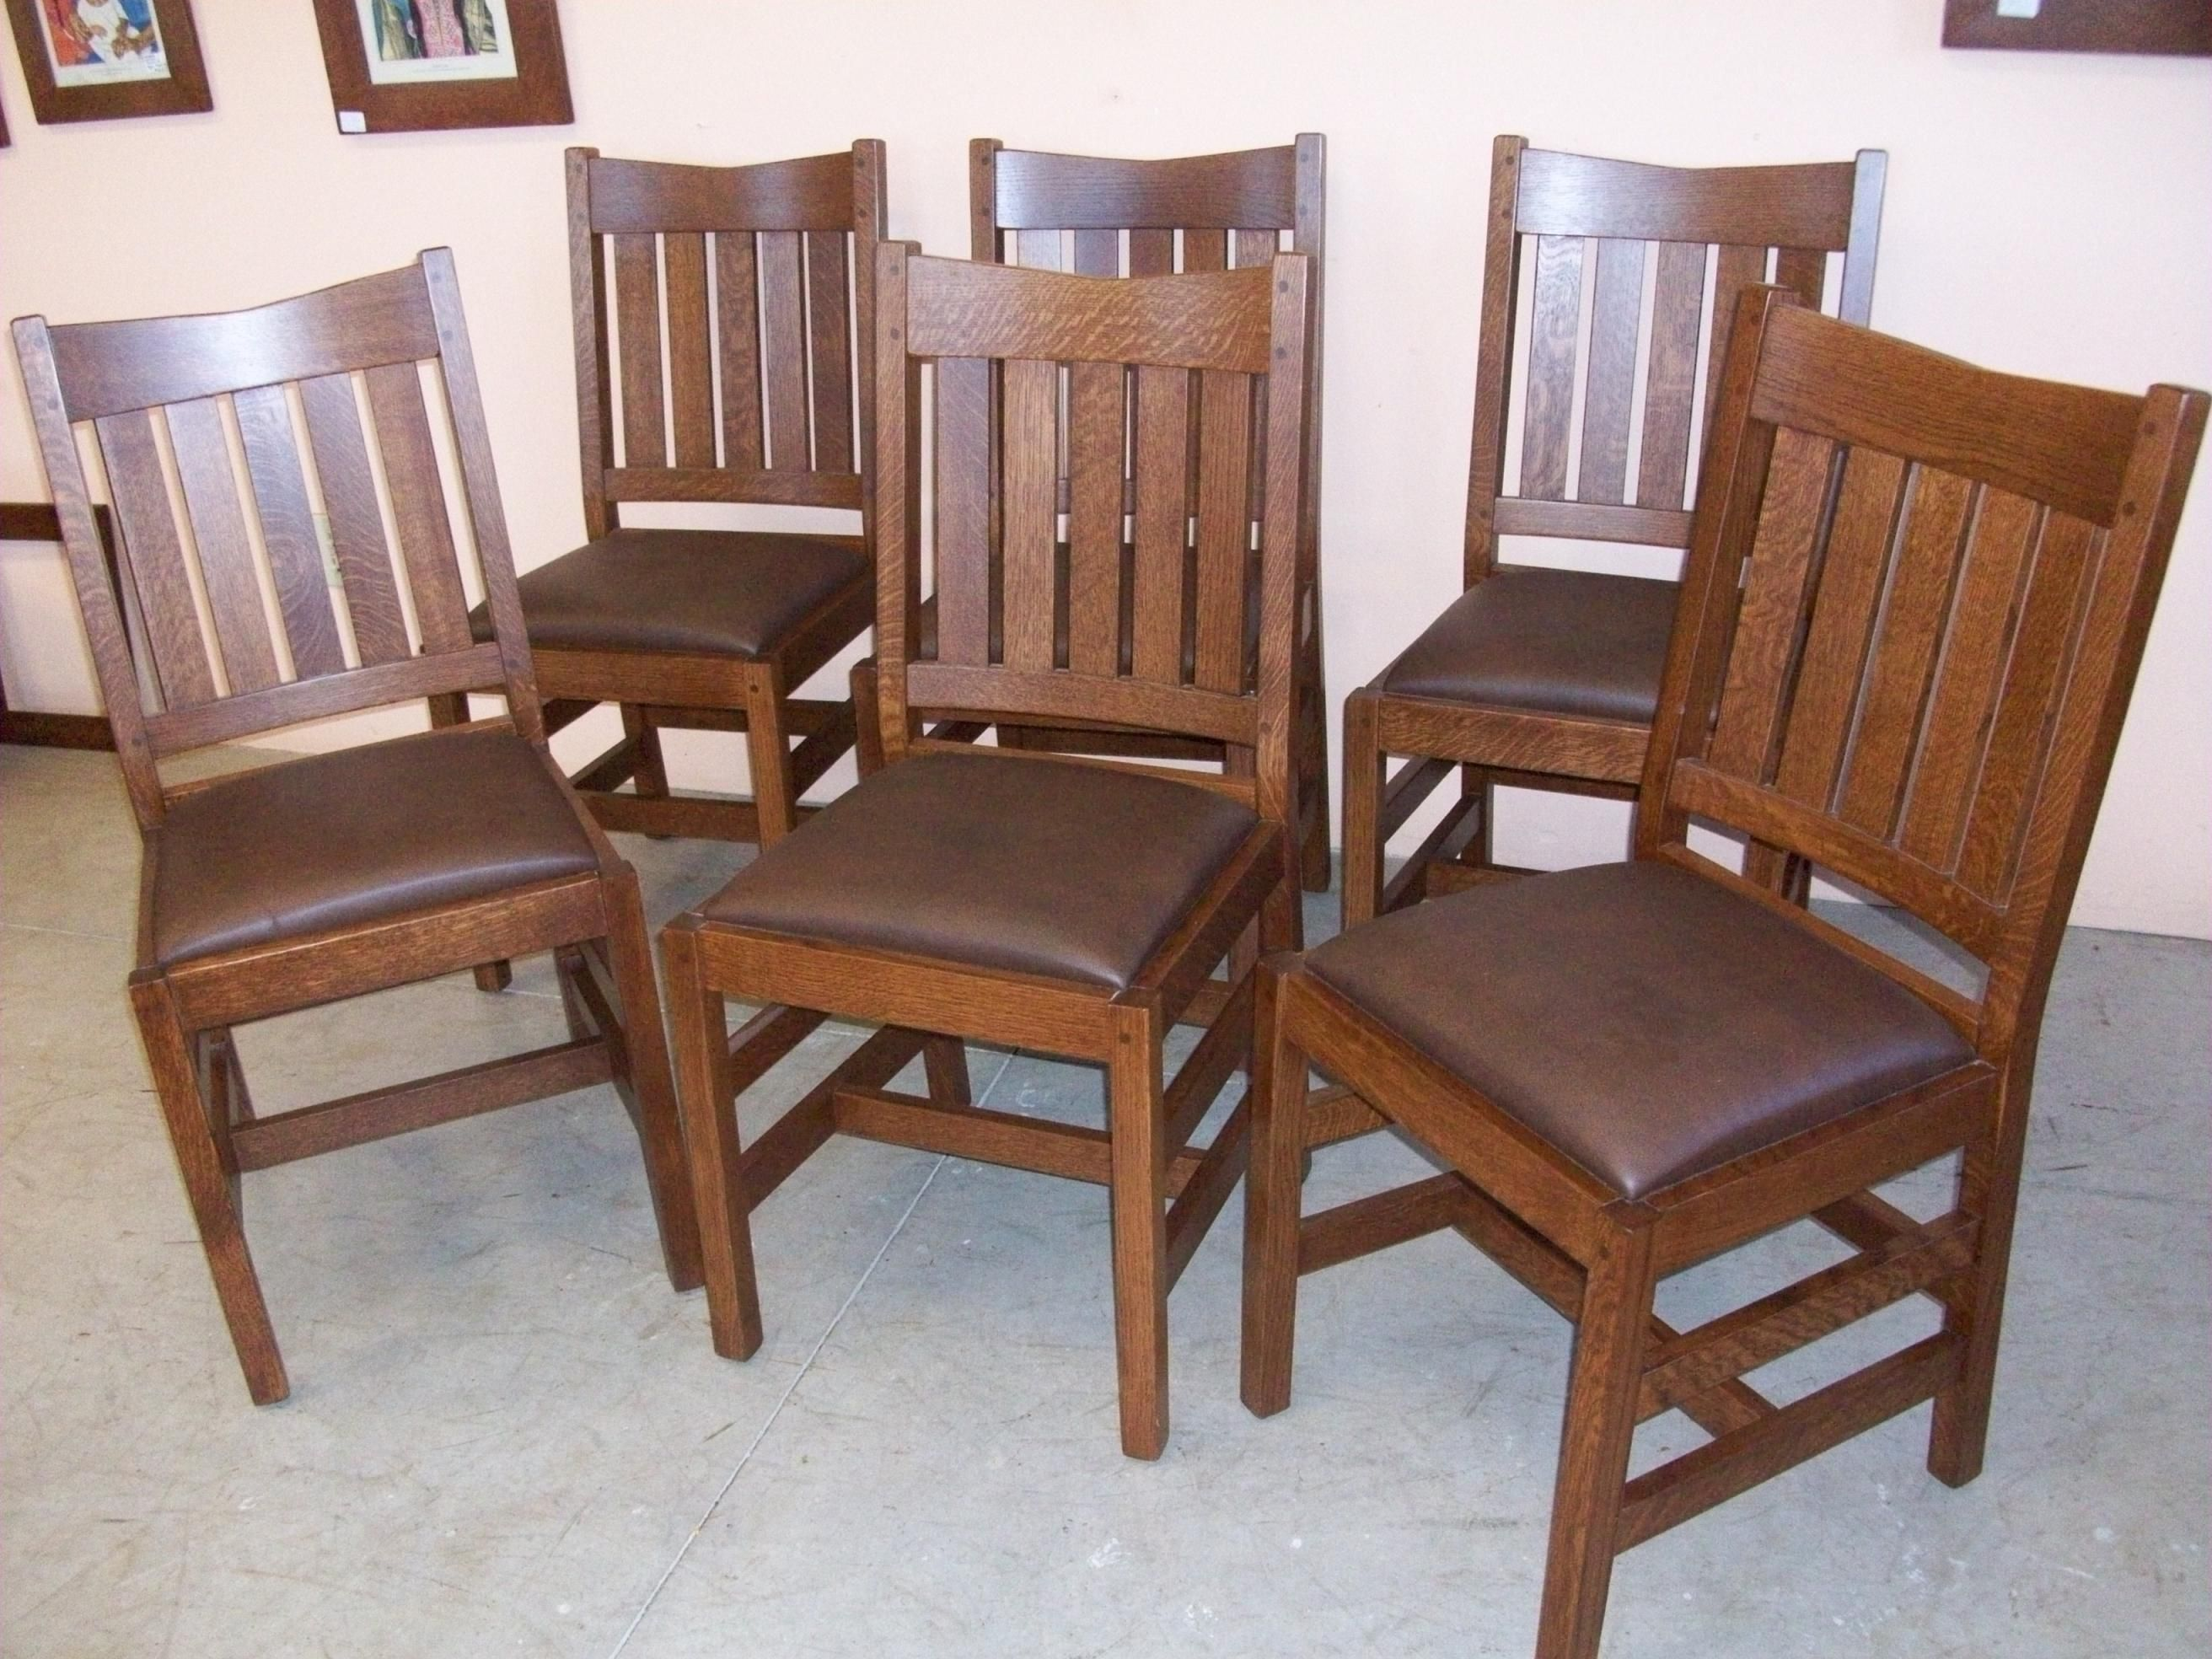 Mission Oak Furniture Sale